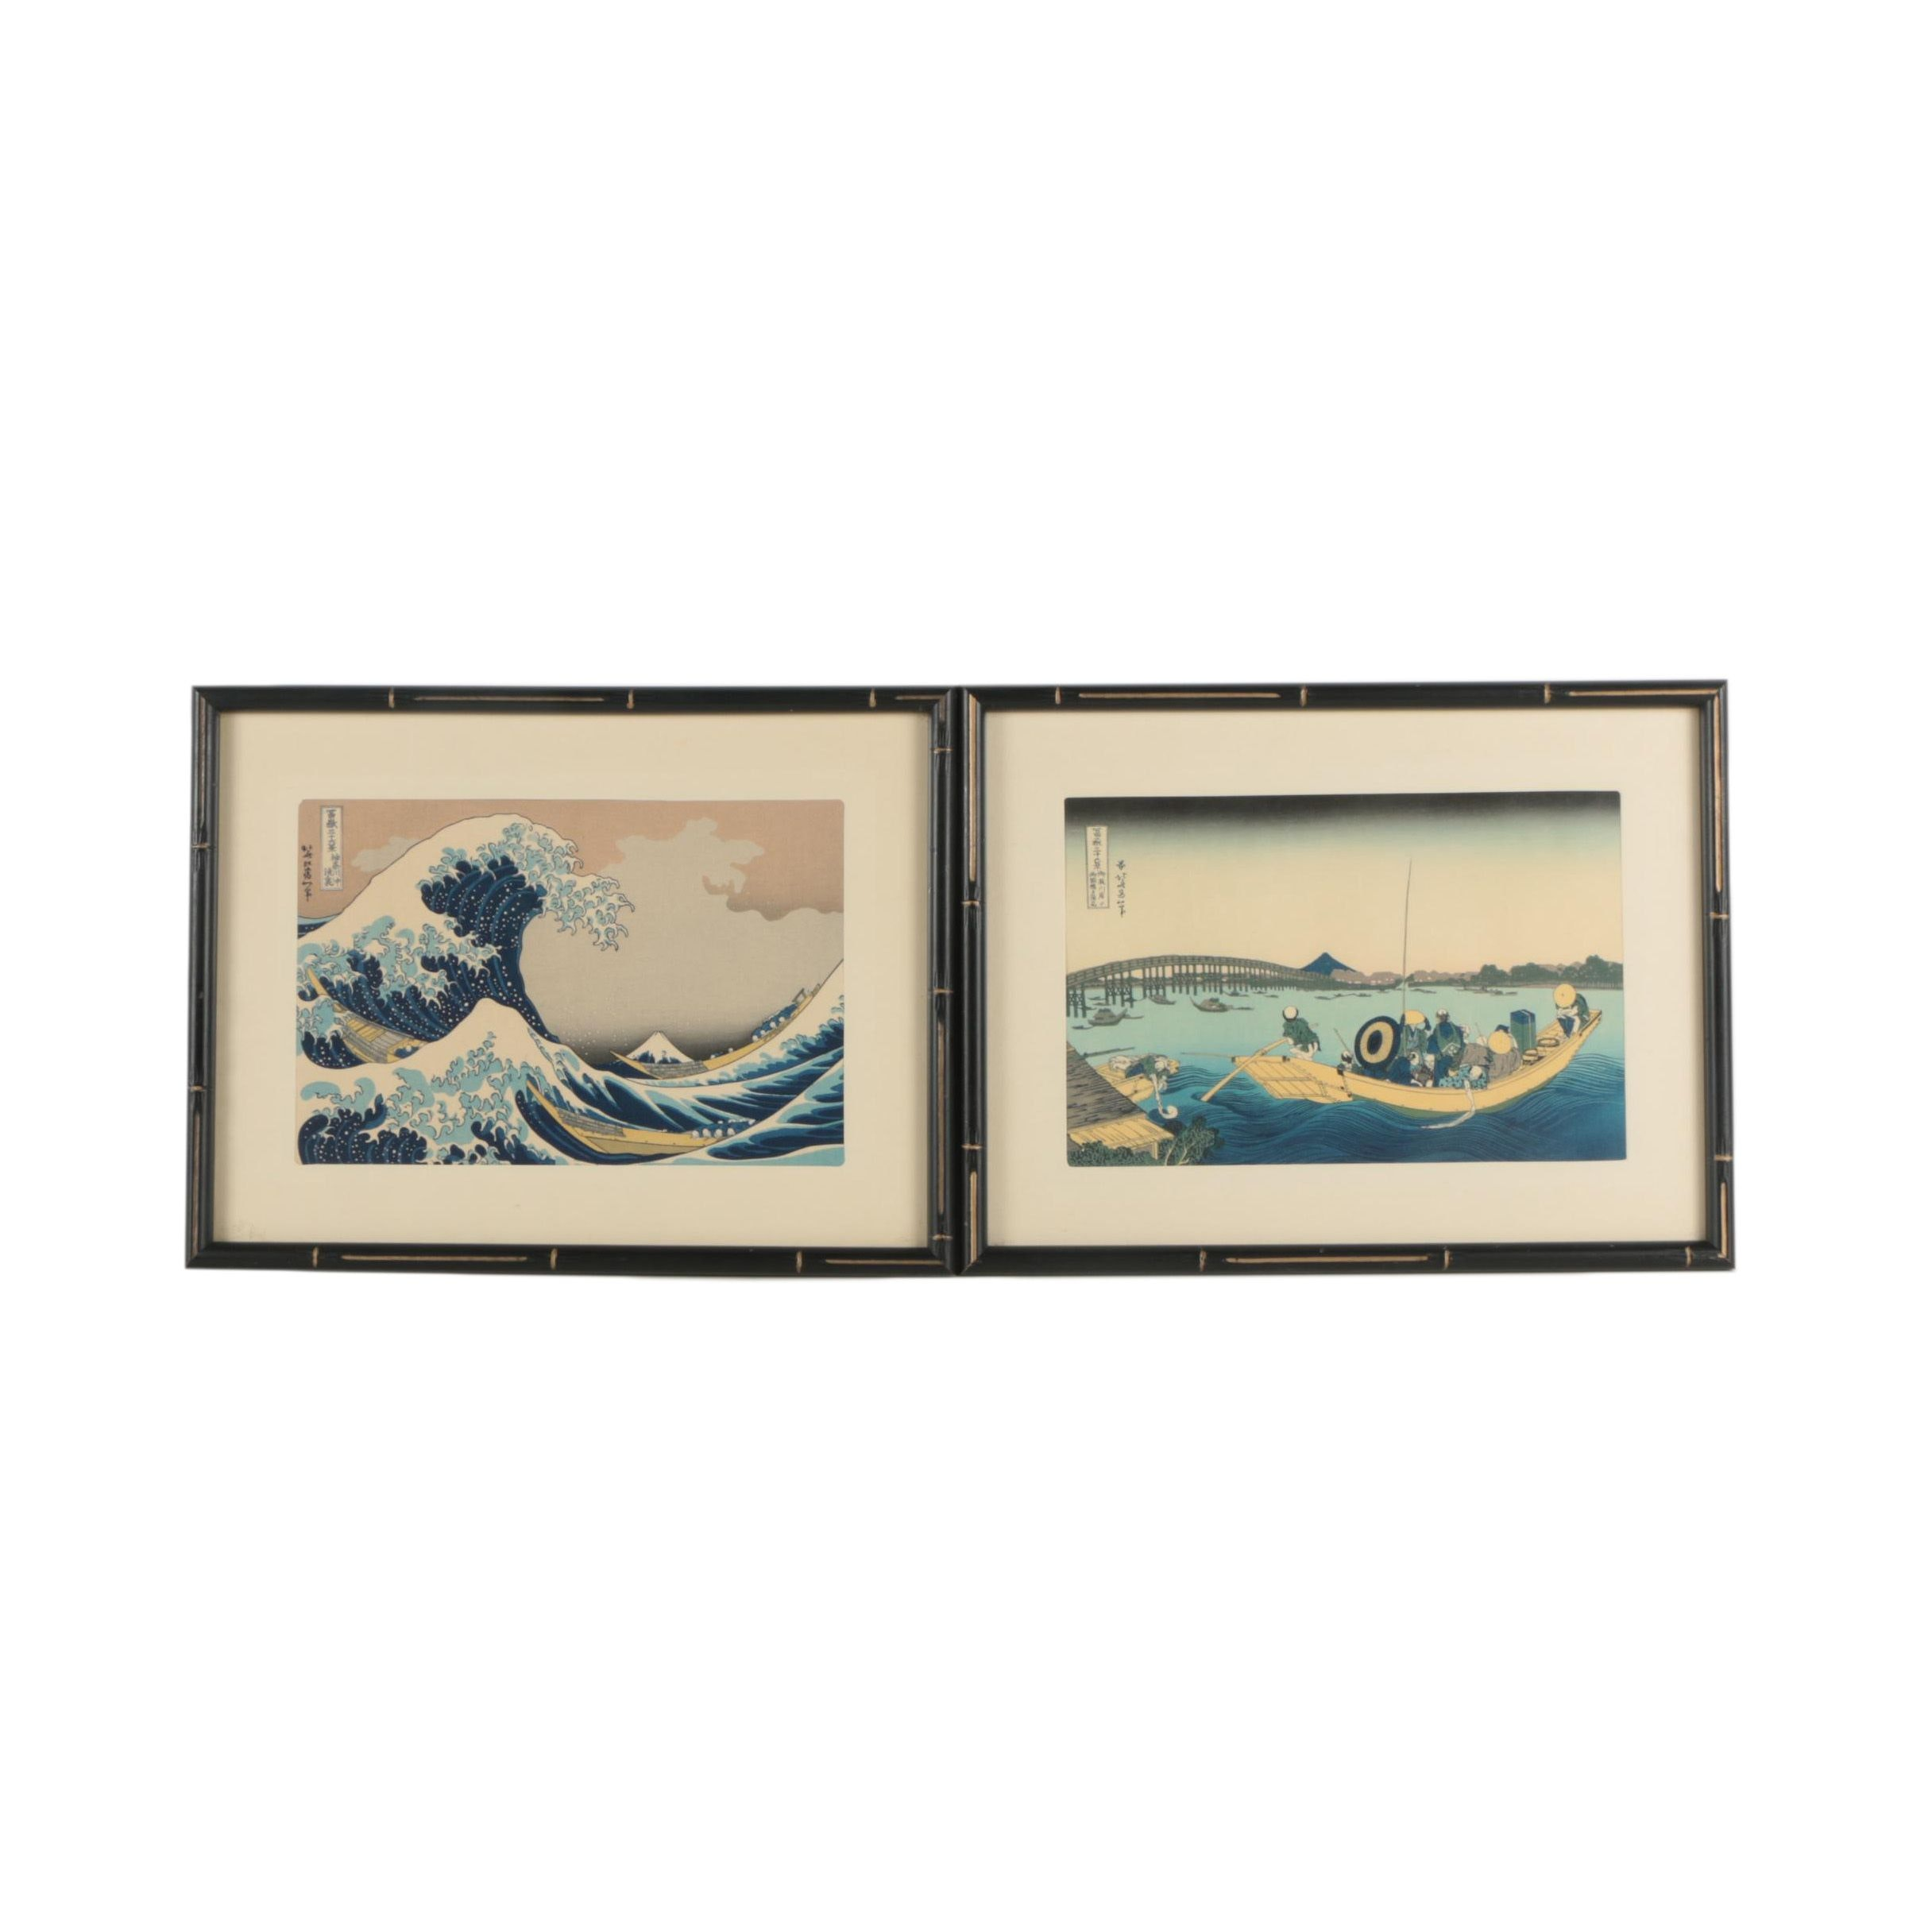 Japanese Ukiyo-e Woodblock Prints After Katsushika Hokusai